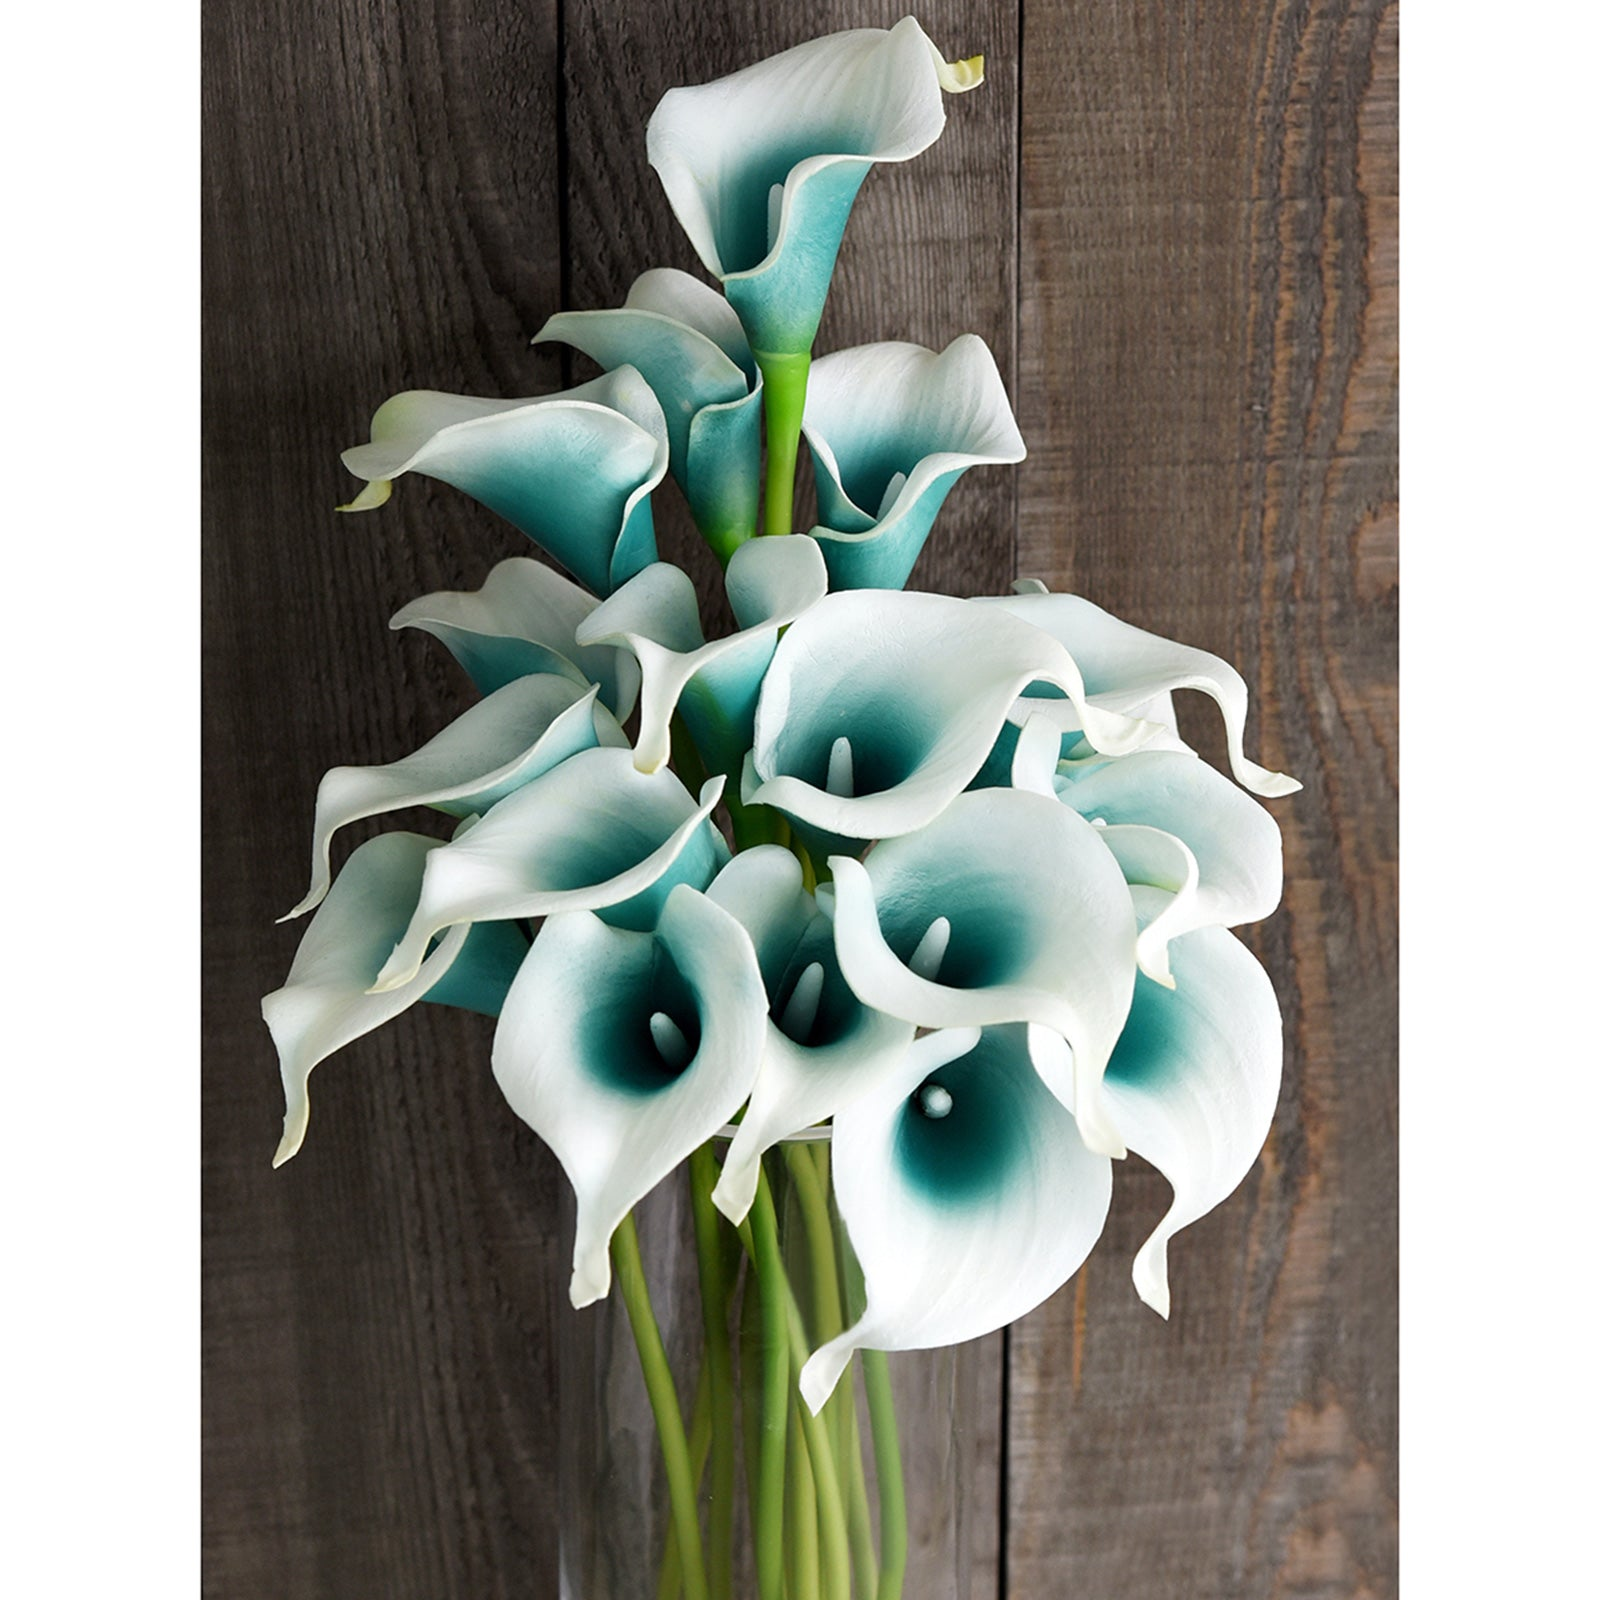 Deep Ocean Real Touch Calla Lilies Artificial Flower Bouquet 10 Stems